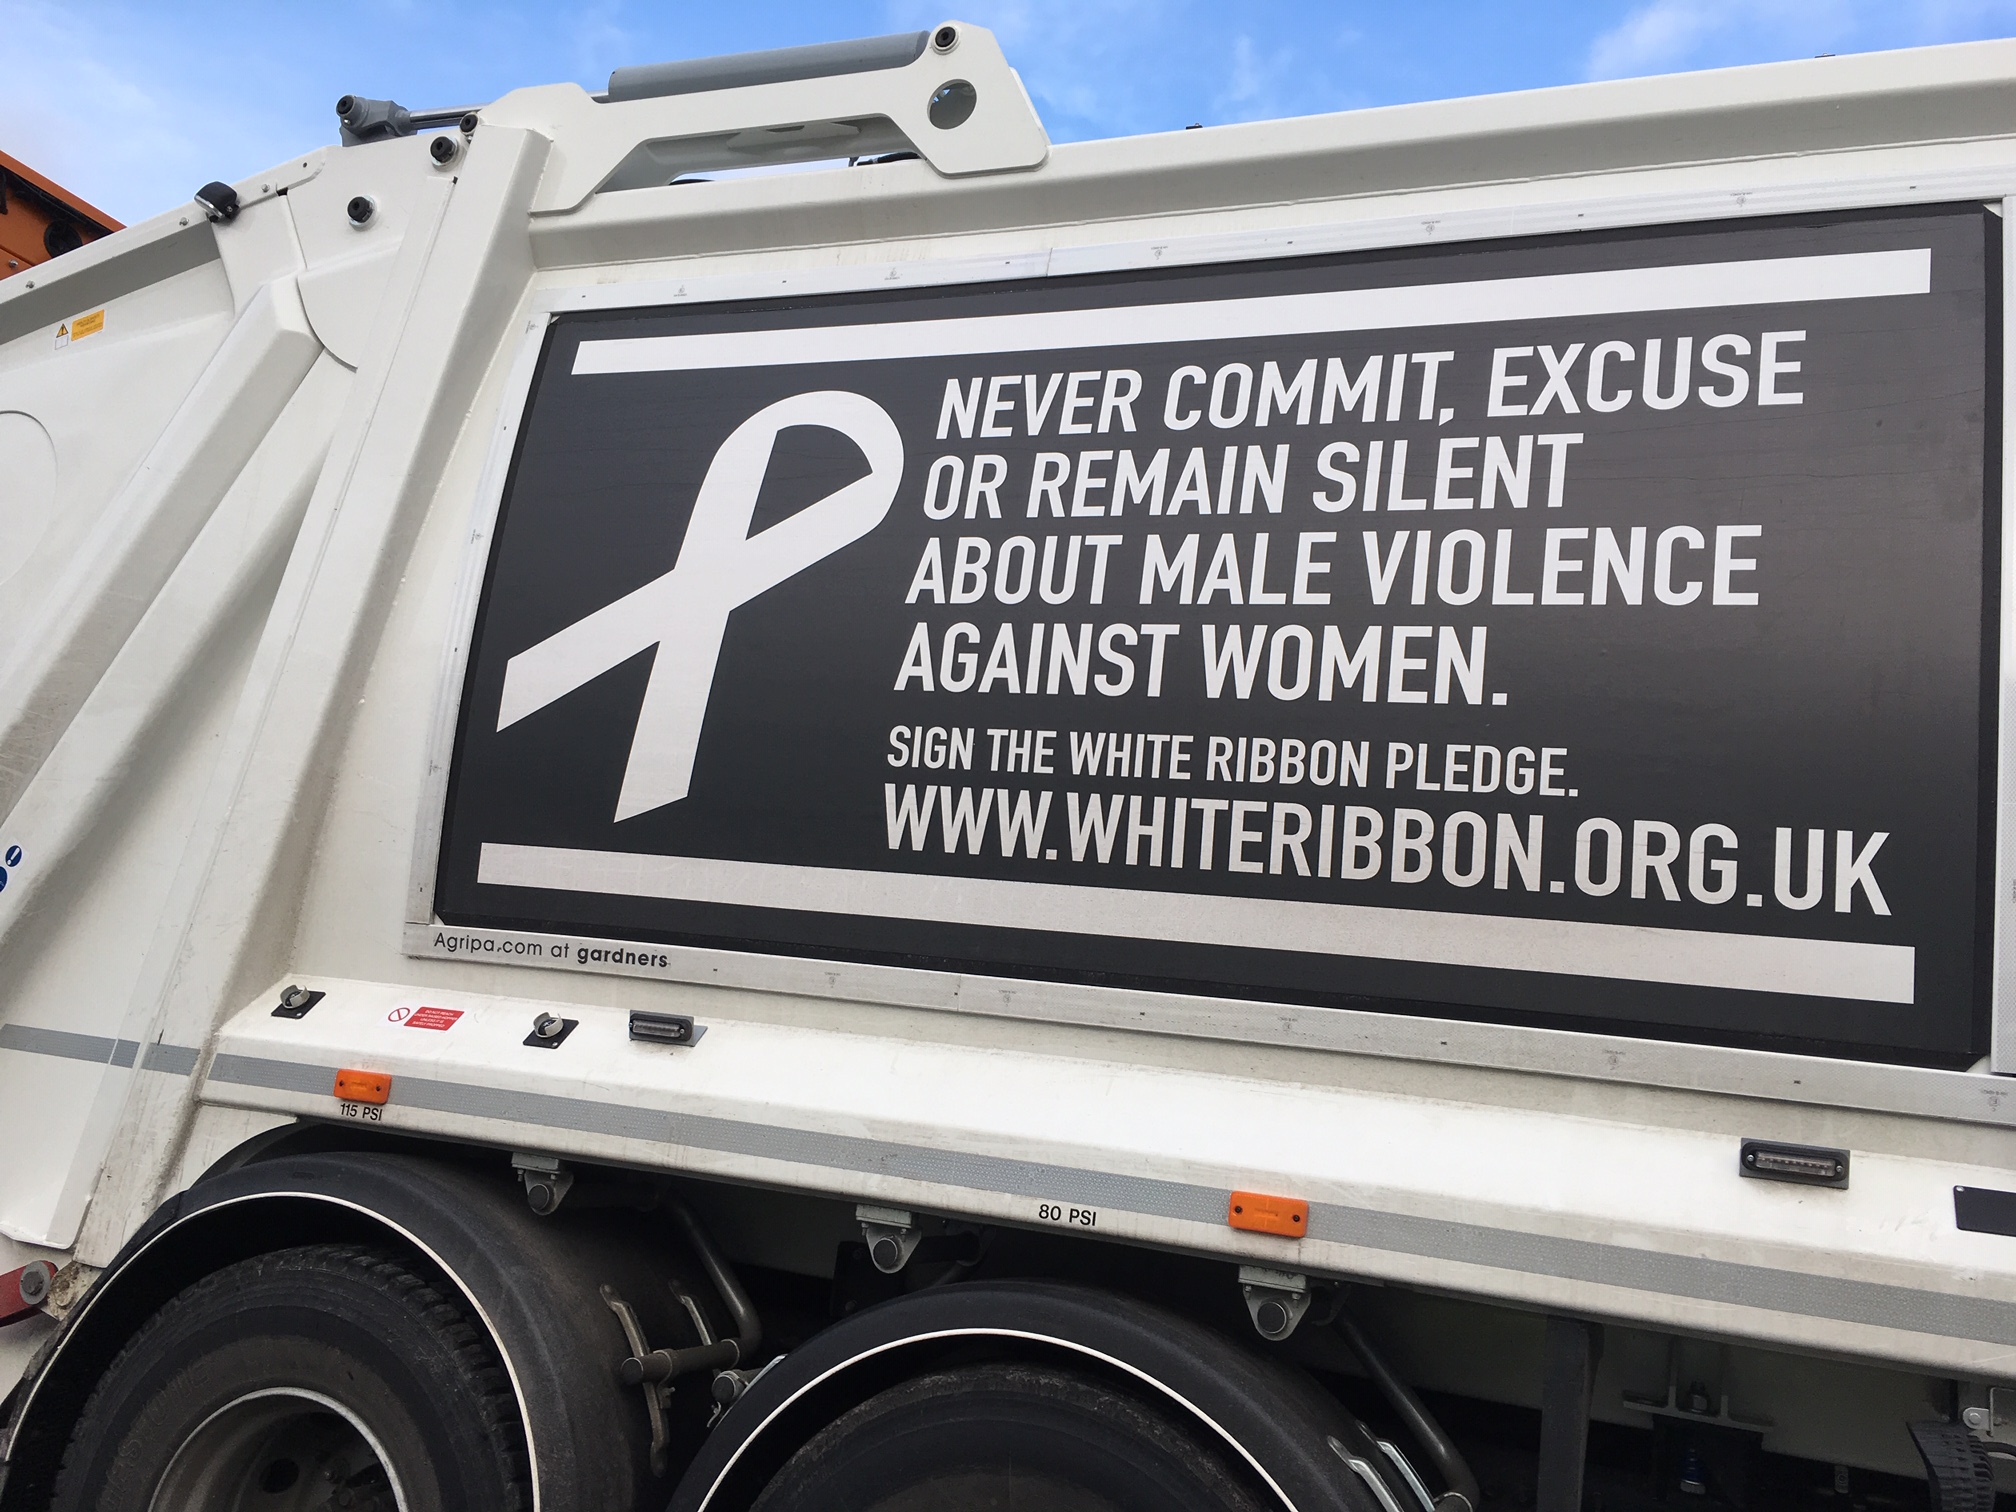 Help end male violence against women